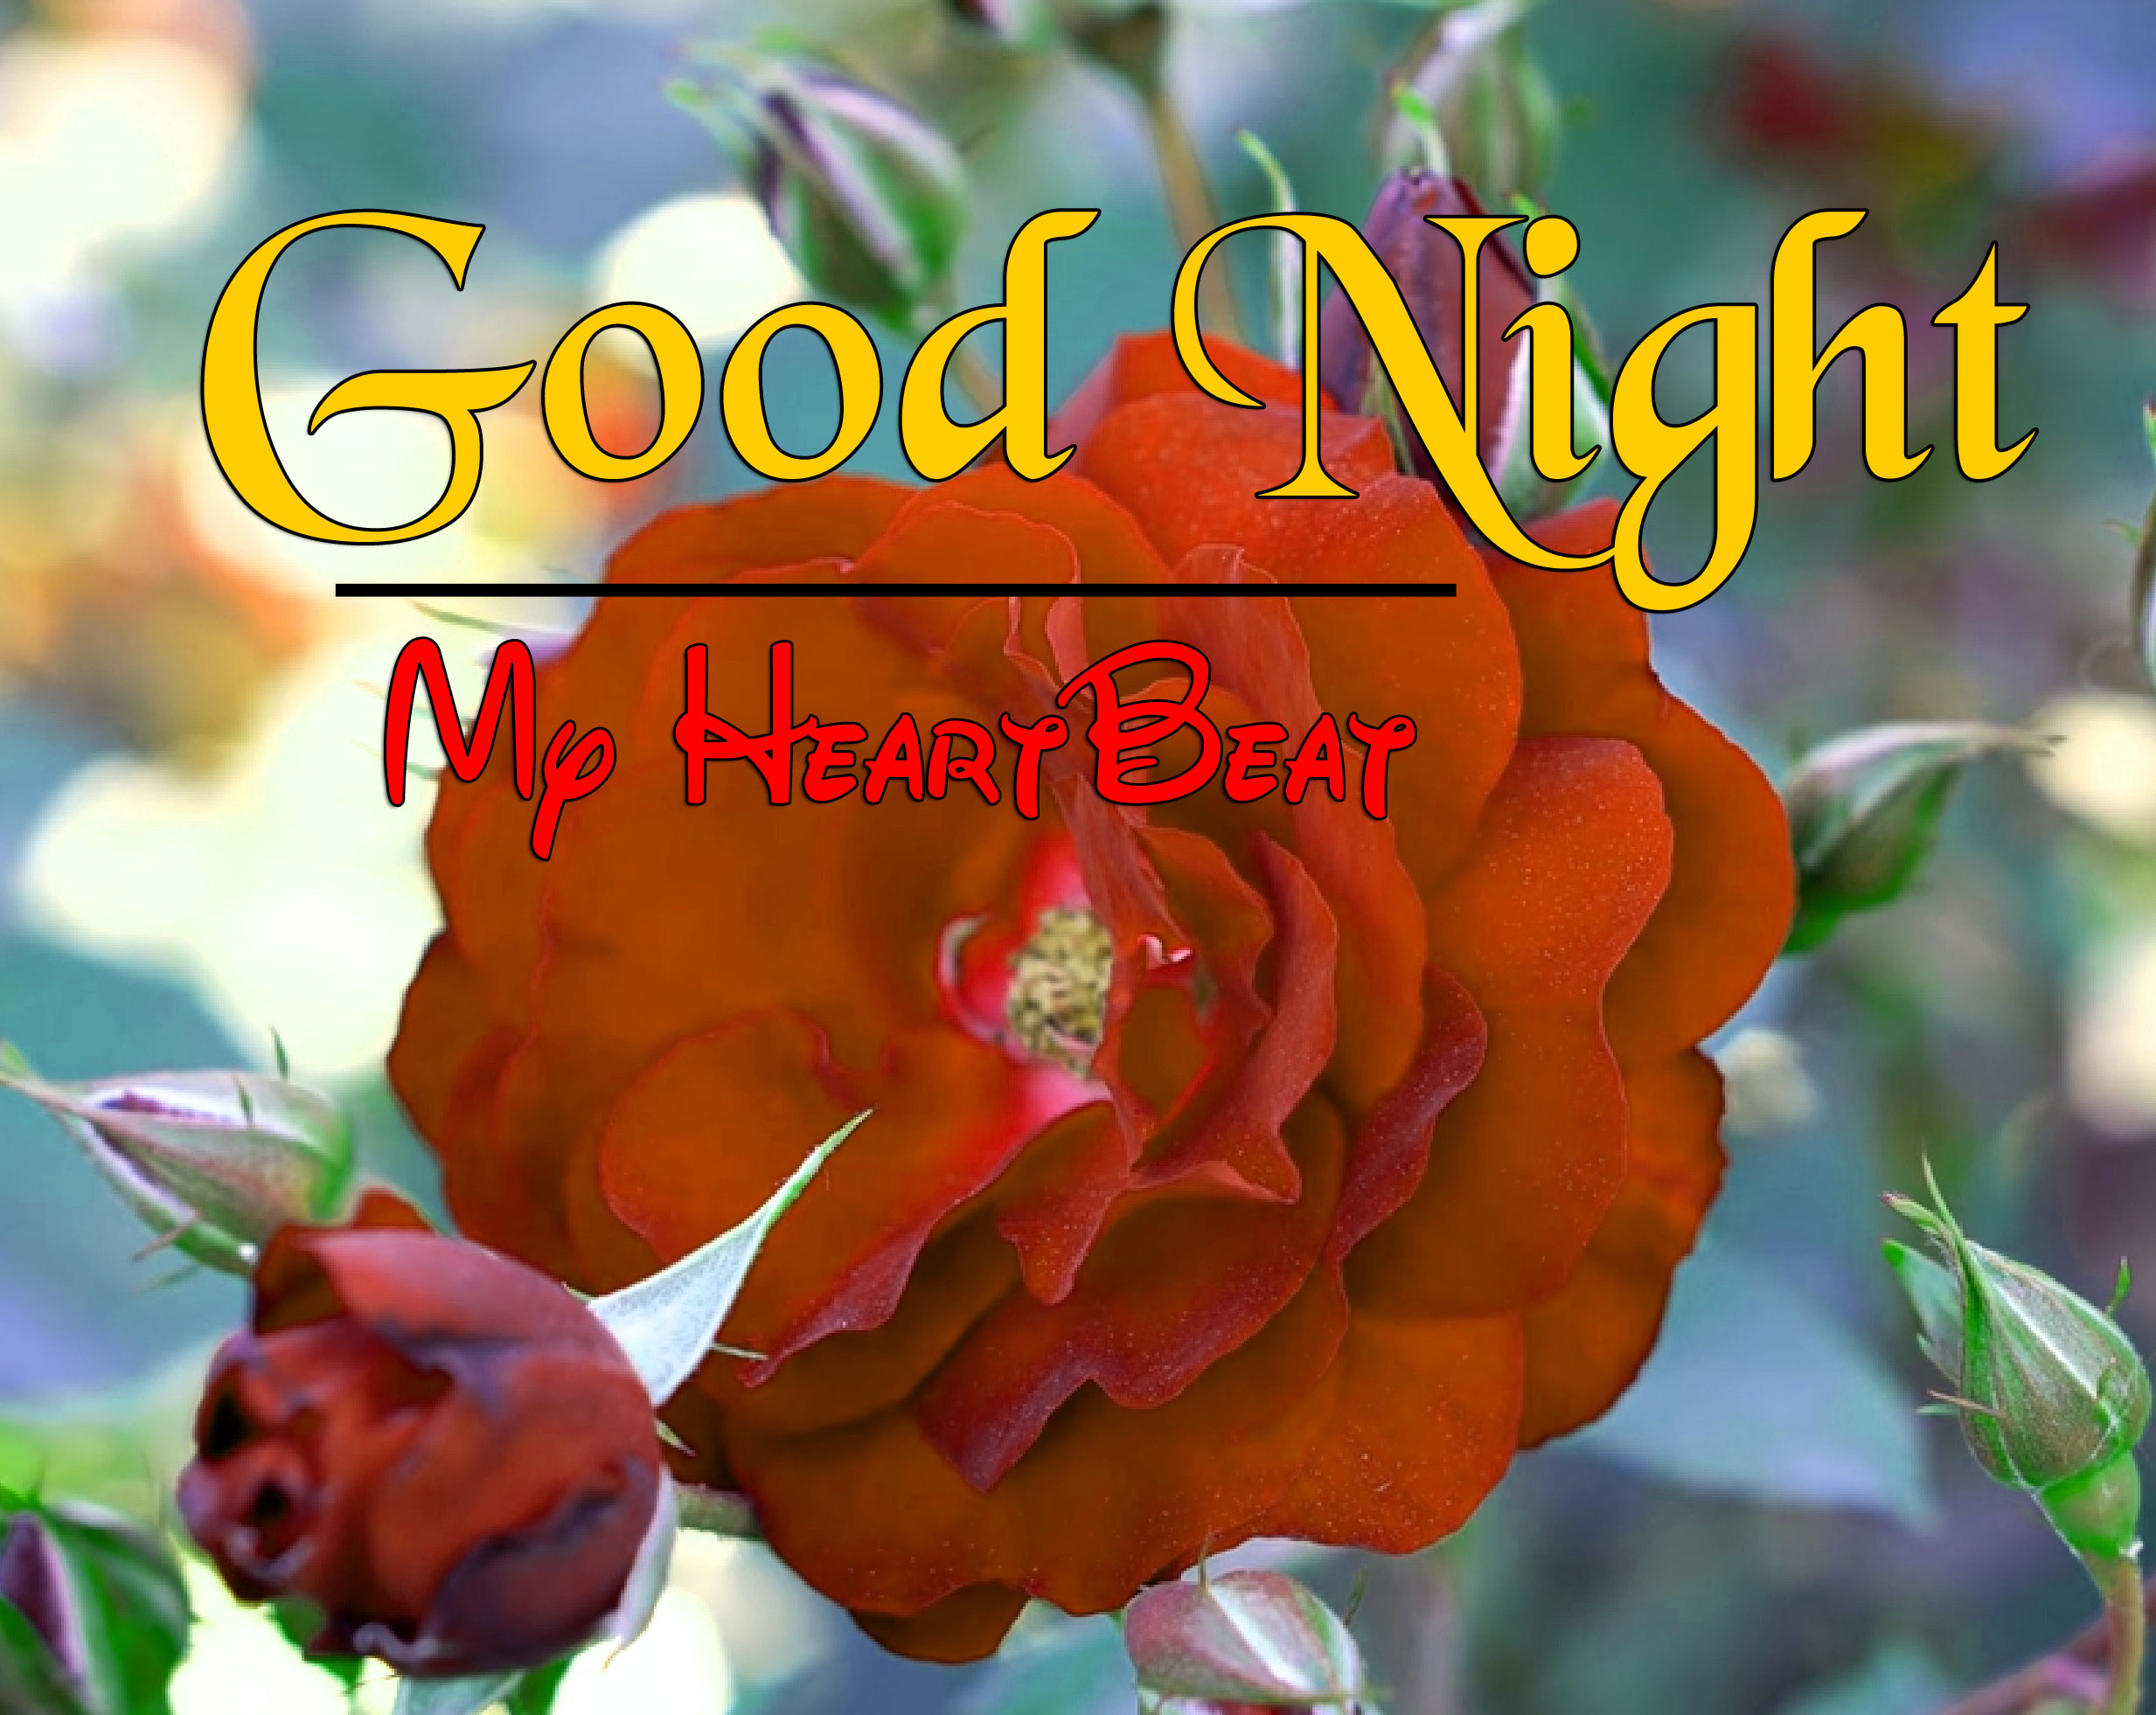 HD Good Night Images Wallpaper